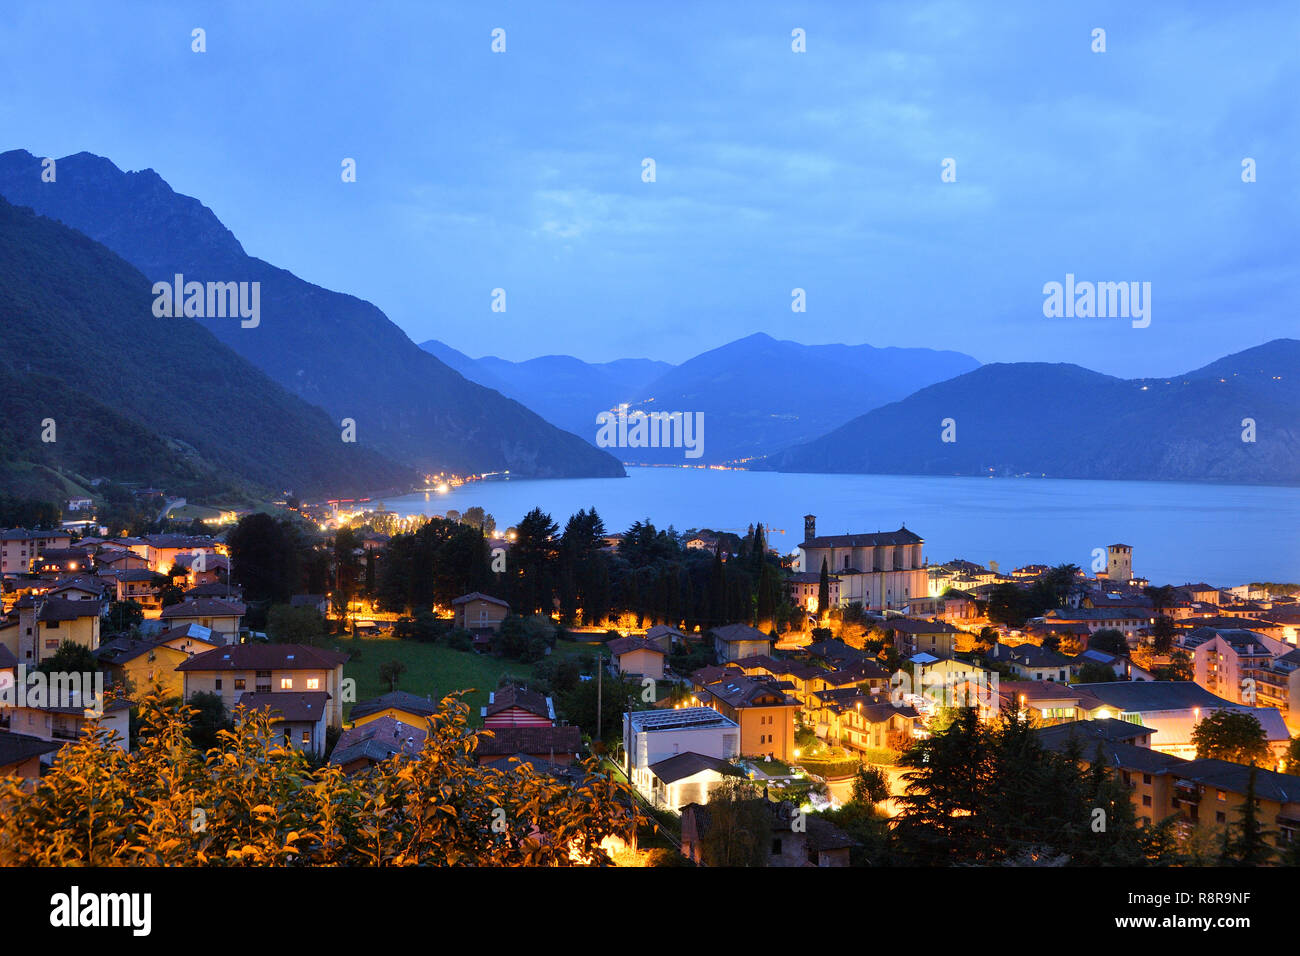 Italy, Lombardy, Iseo lake (Il Lago d'Iseo), Pisogne - Stock Image